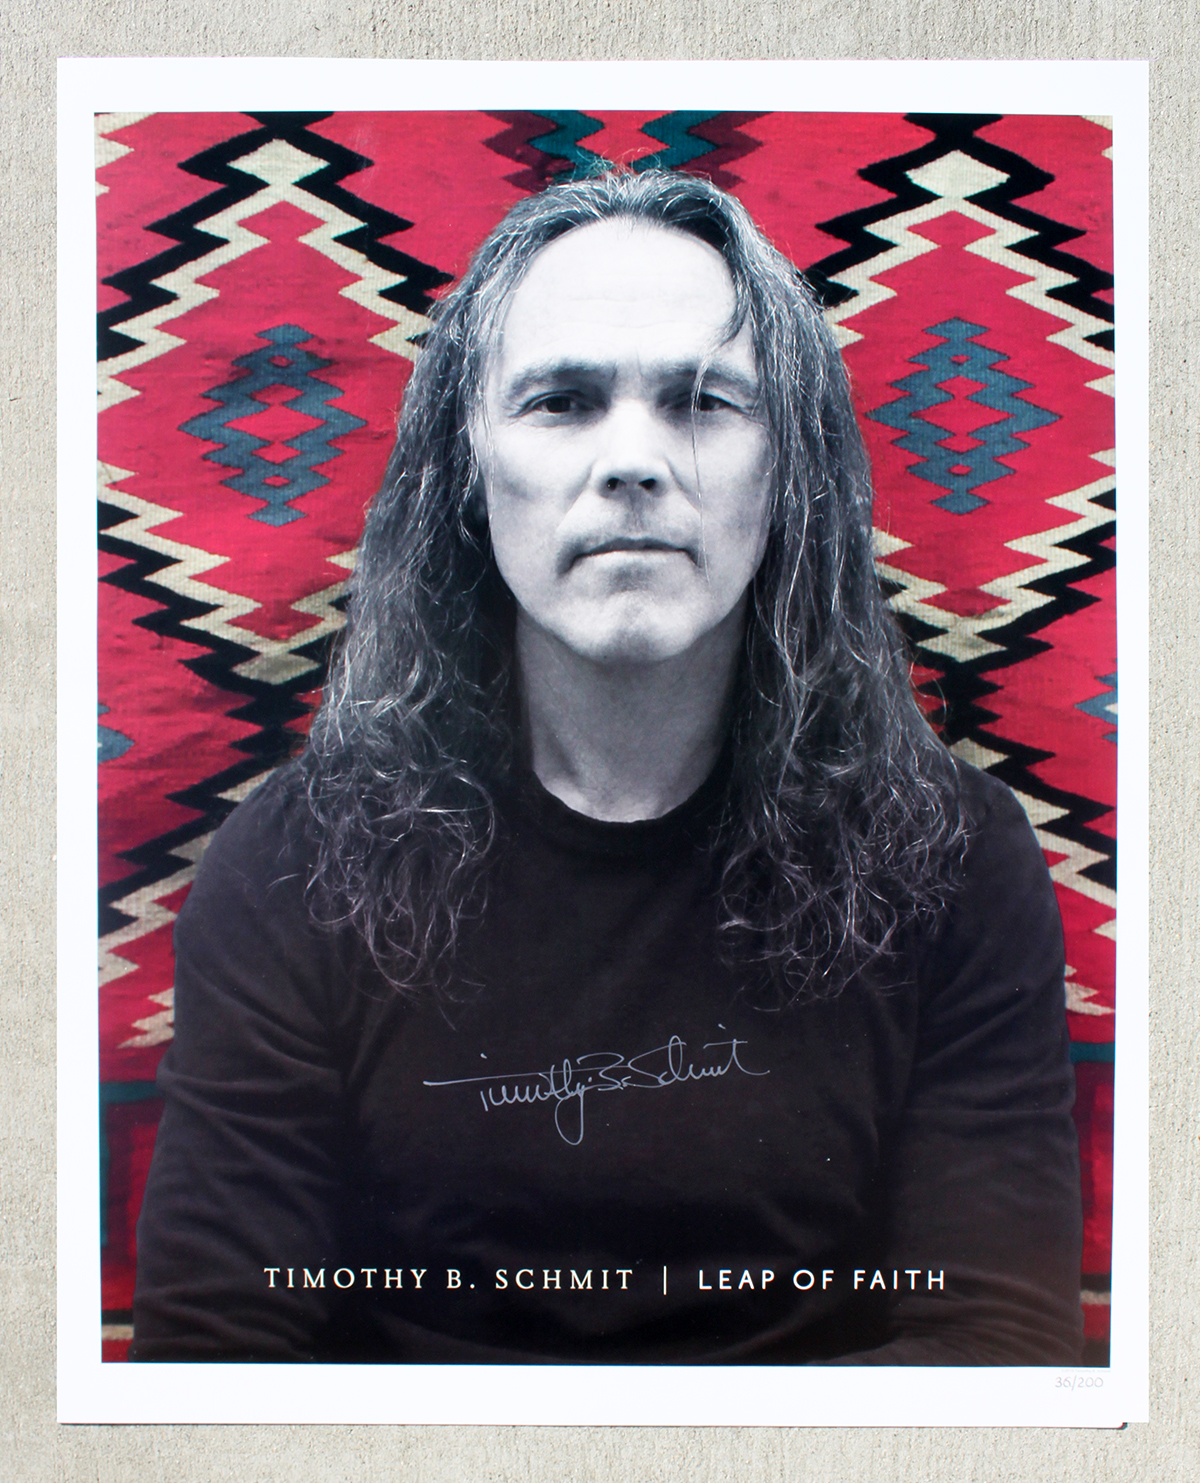 Timothy B Schmit - Tour Book - Leap of Faith #1